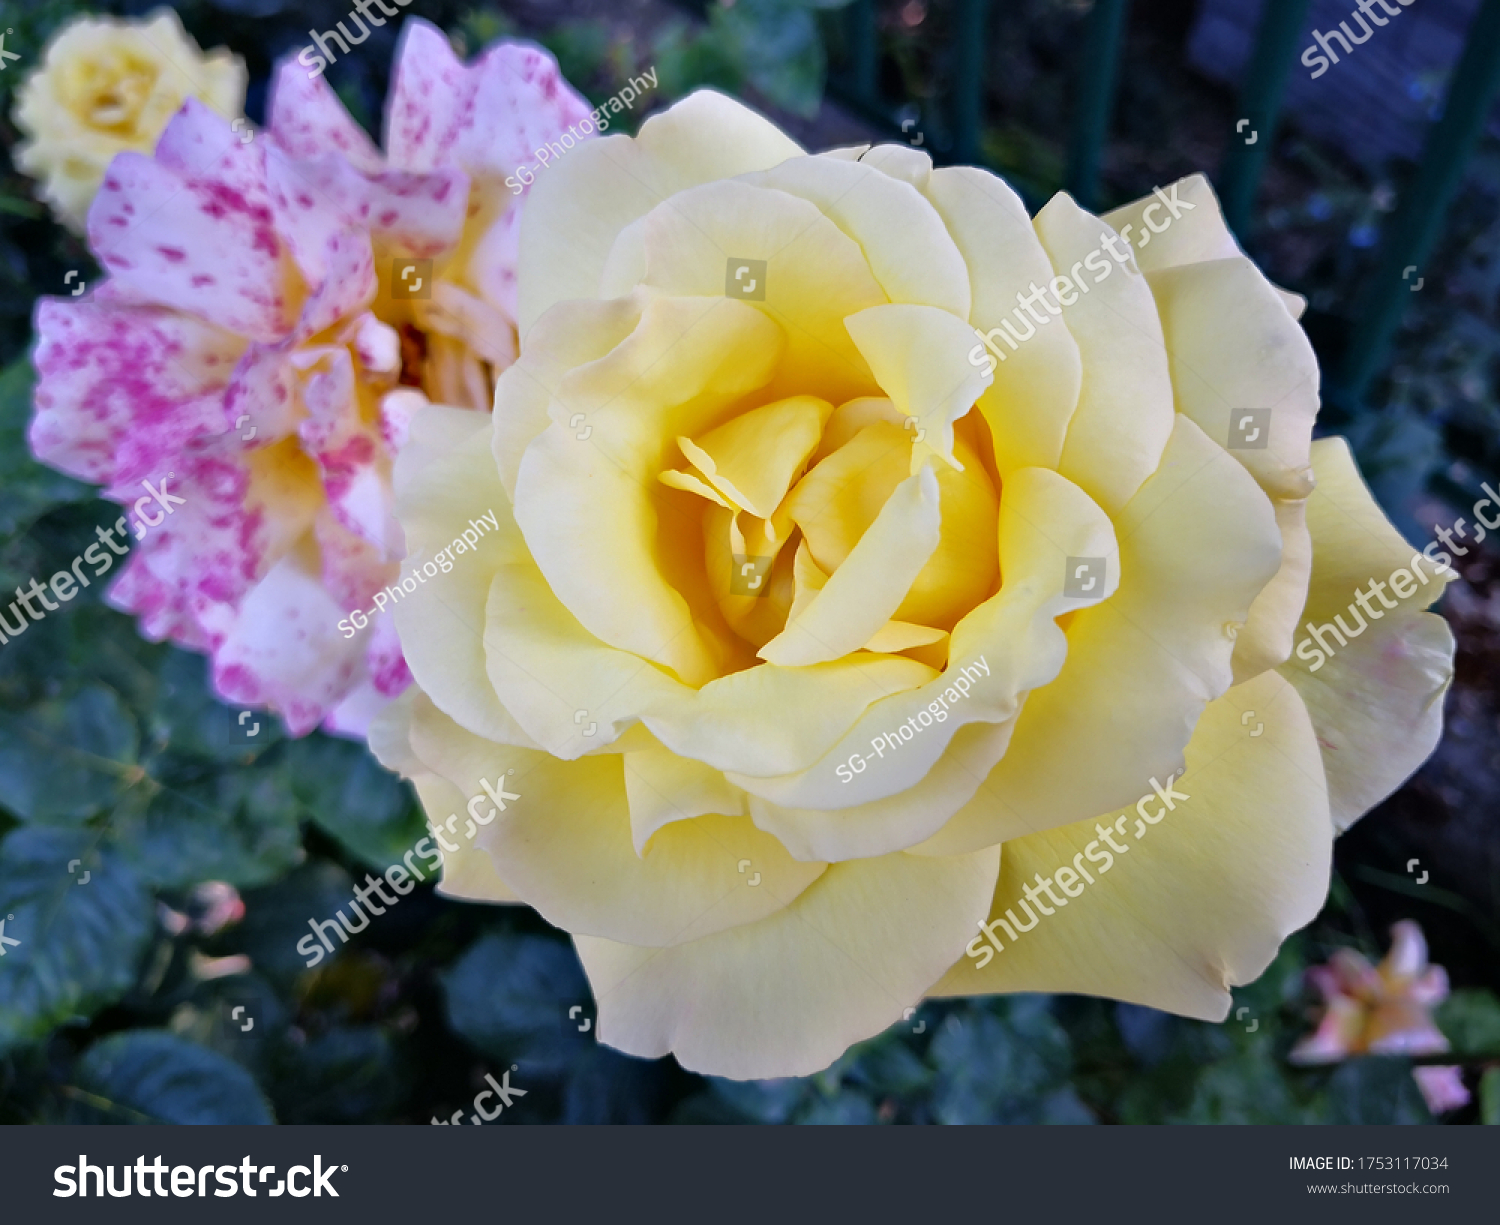 stock-photo-yellow-rose-in-the-garden-17